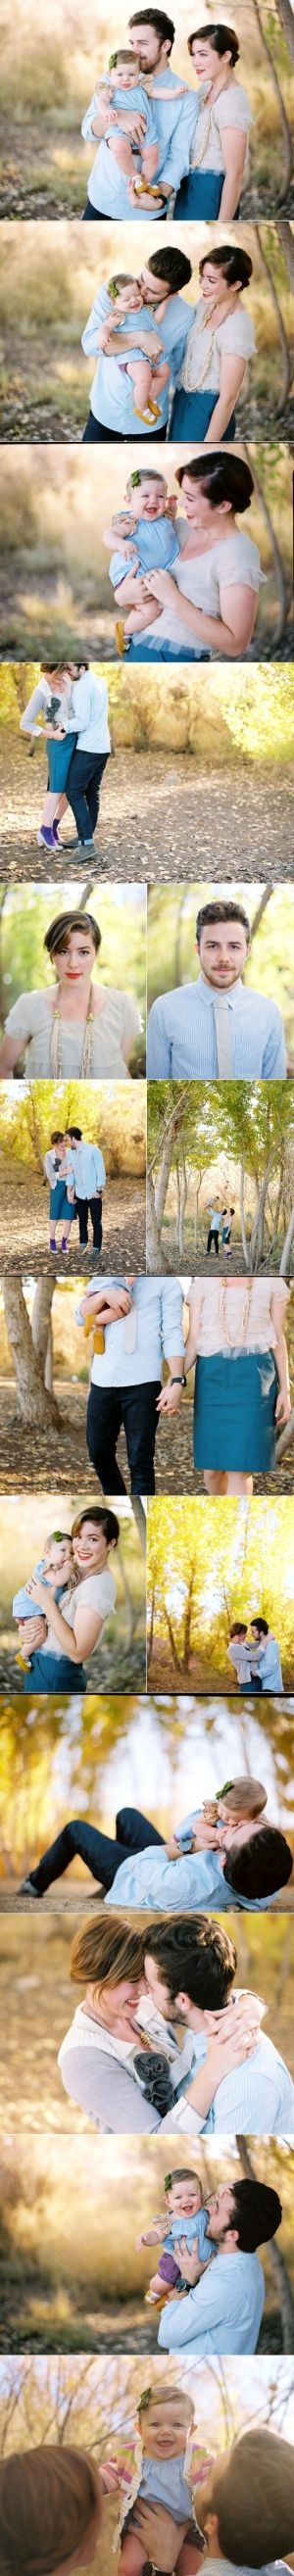 6 month family photos